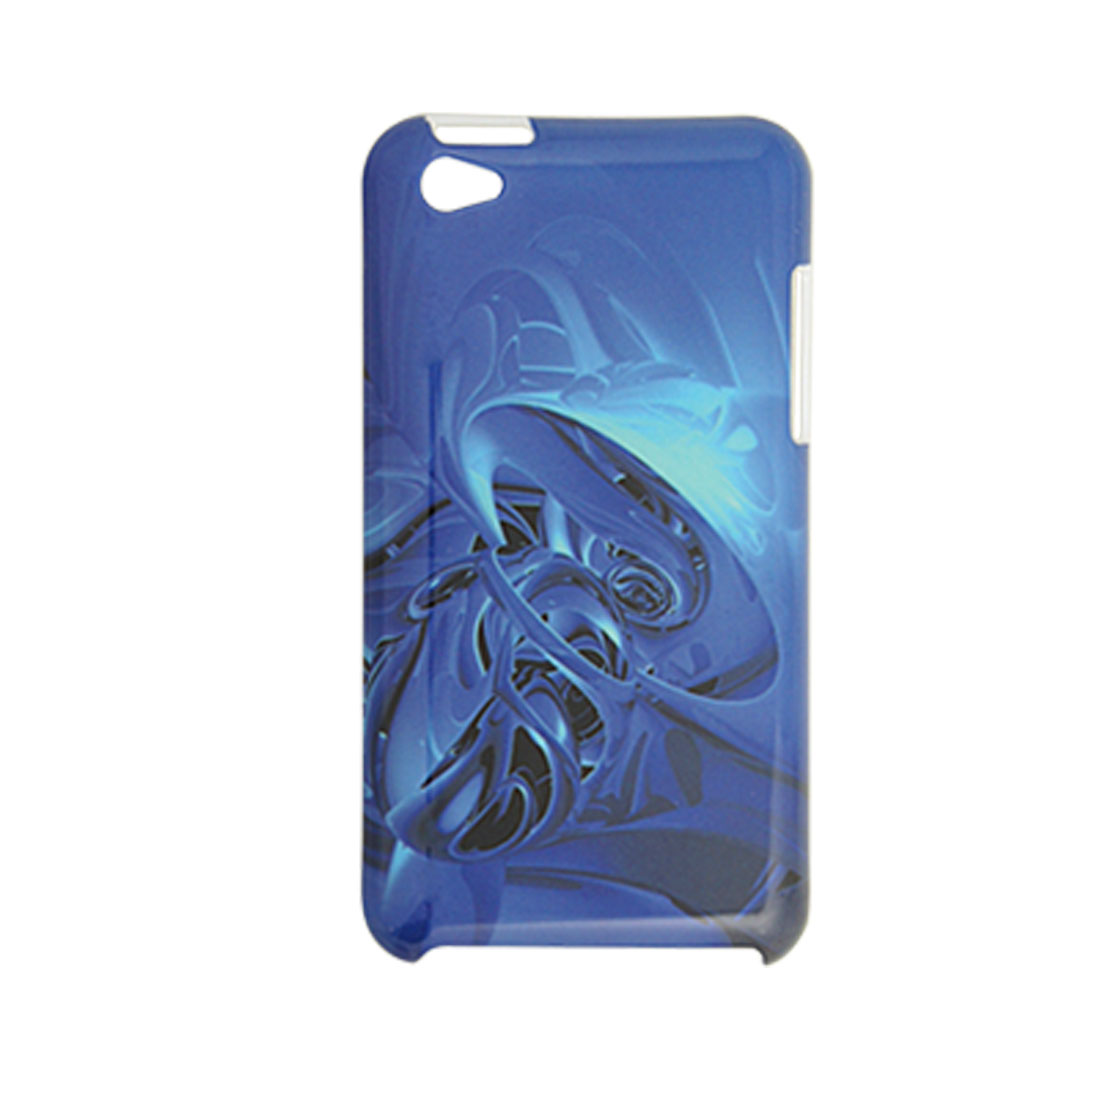 Plastic Printed Indigo Blue IMD Back Case for iPod Touch 4G